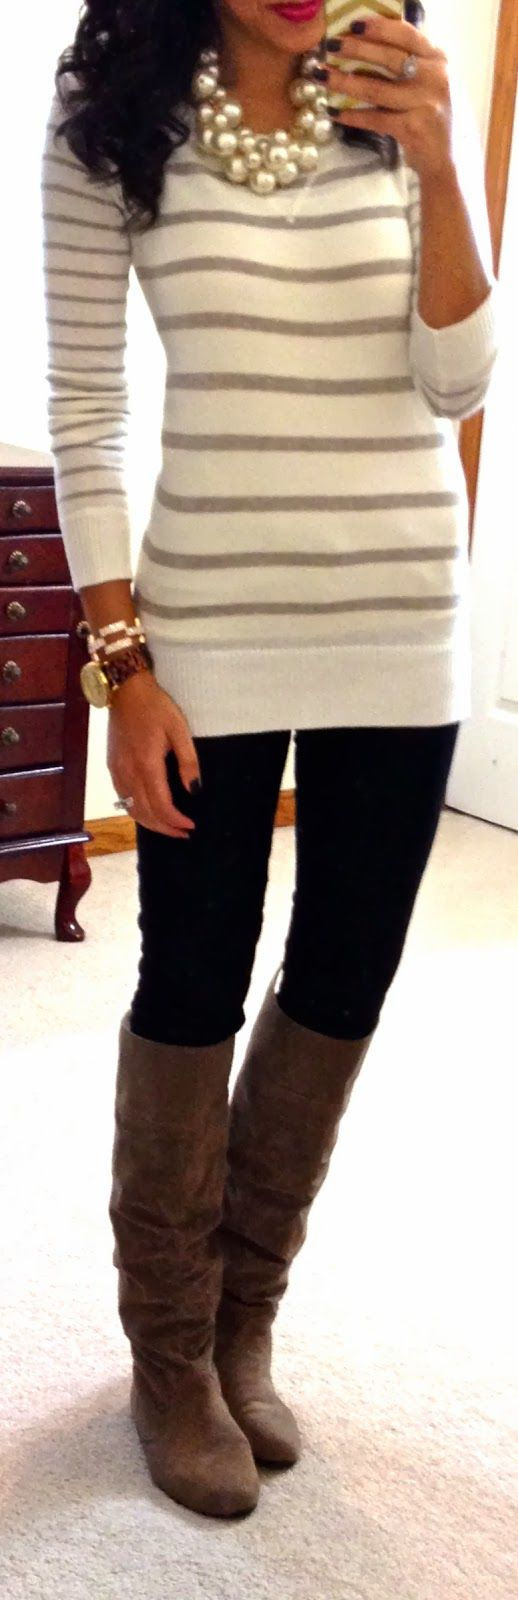 Striped sweater & boots